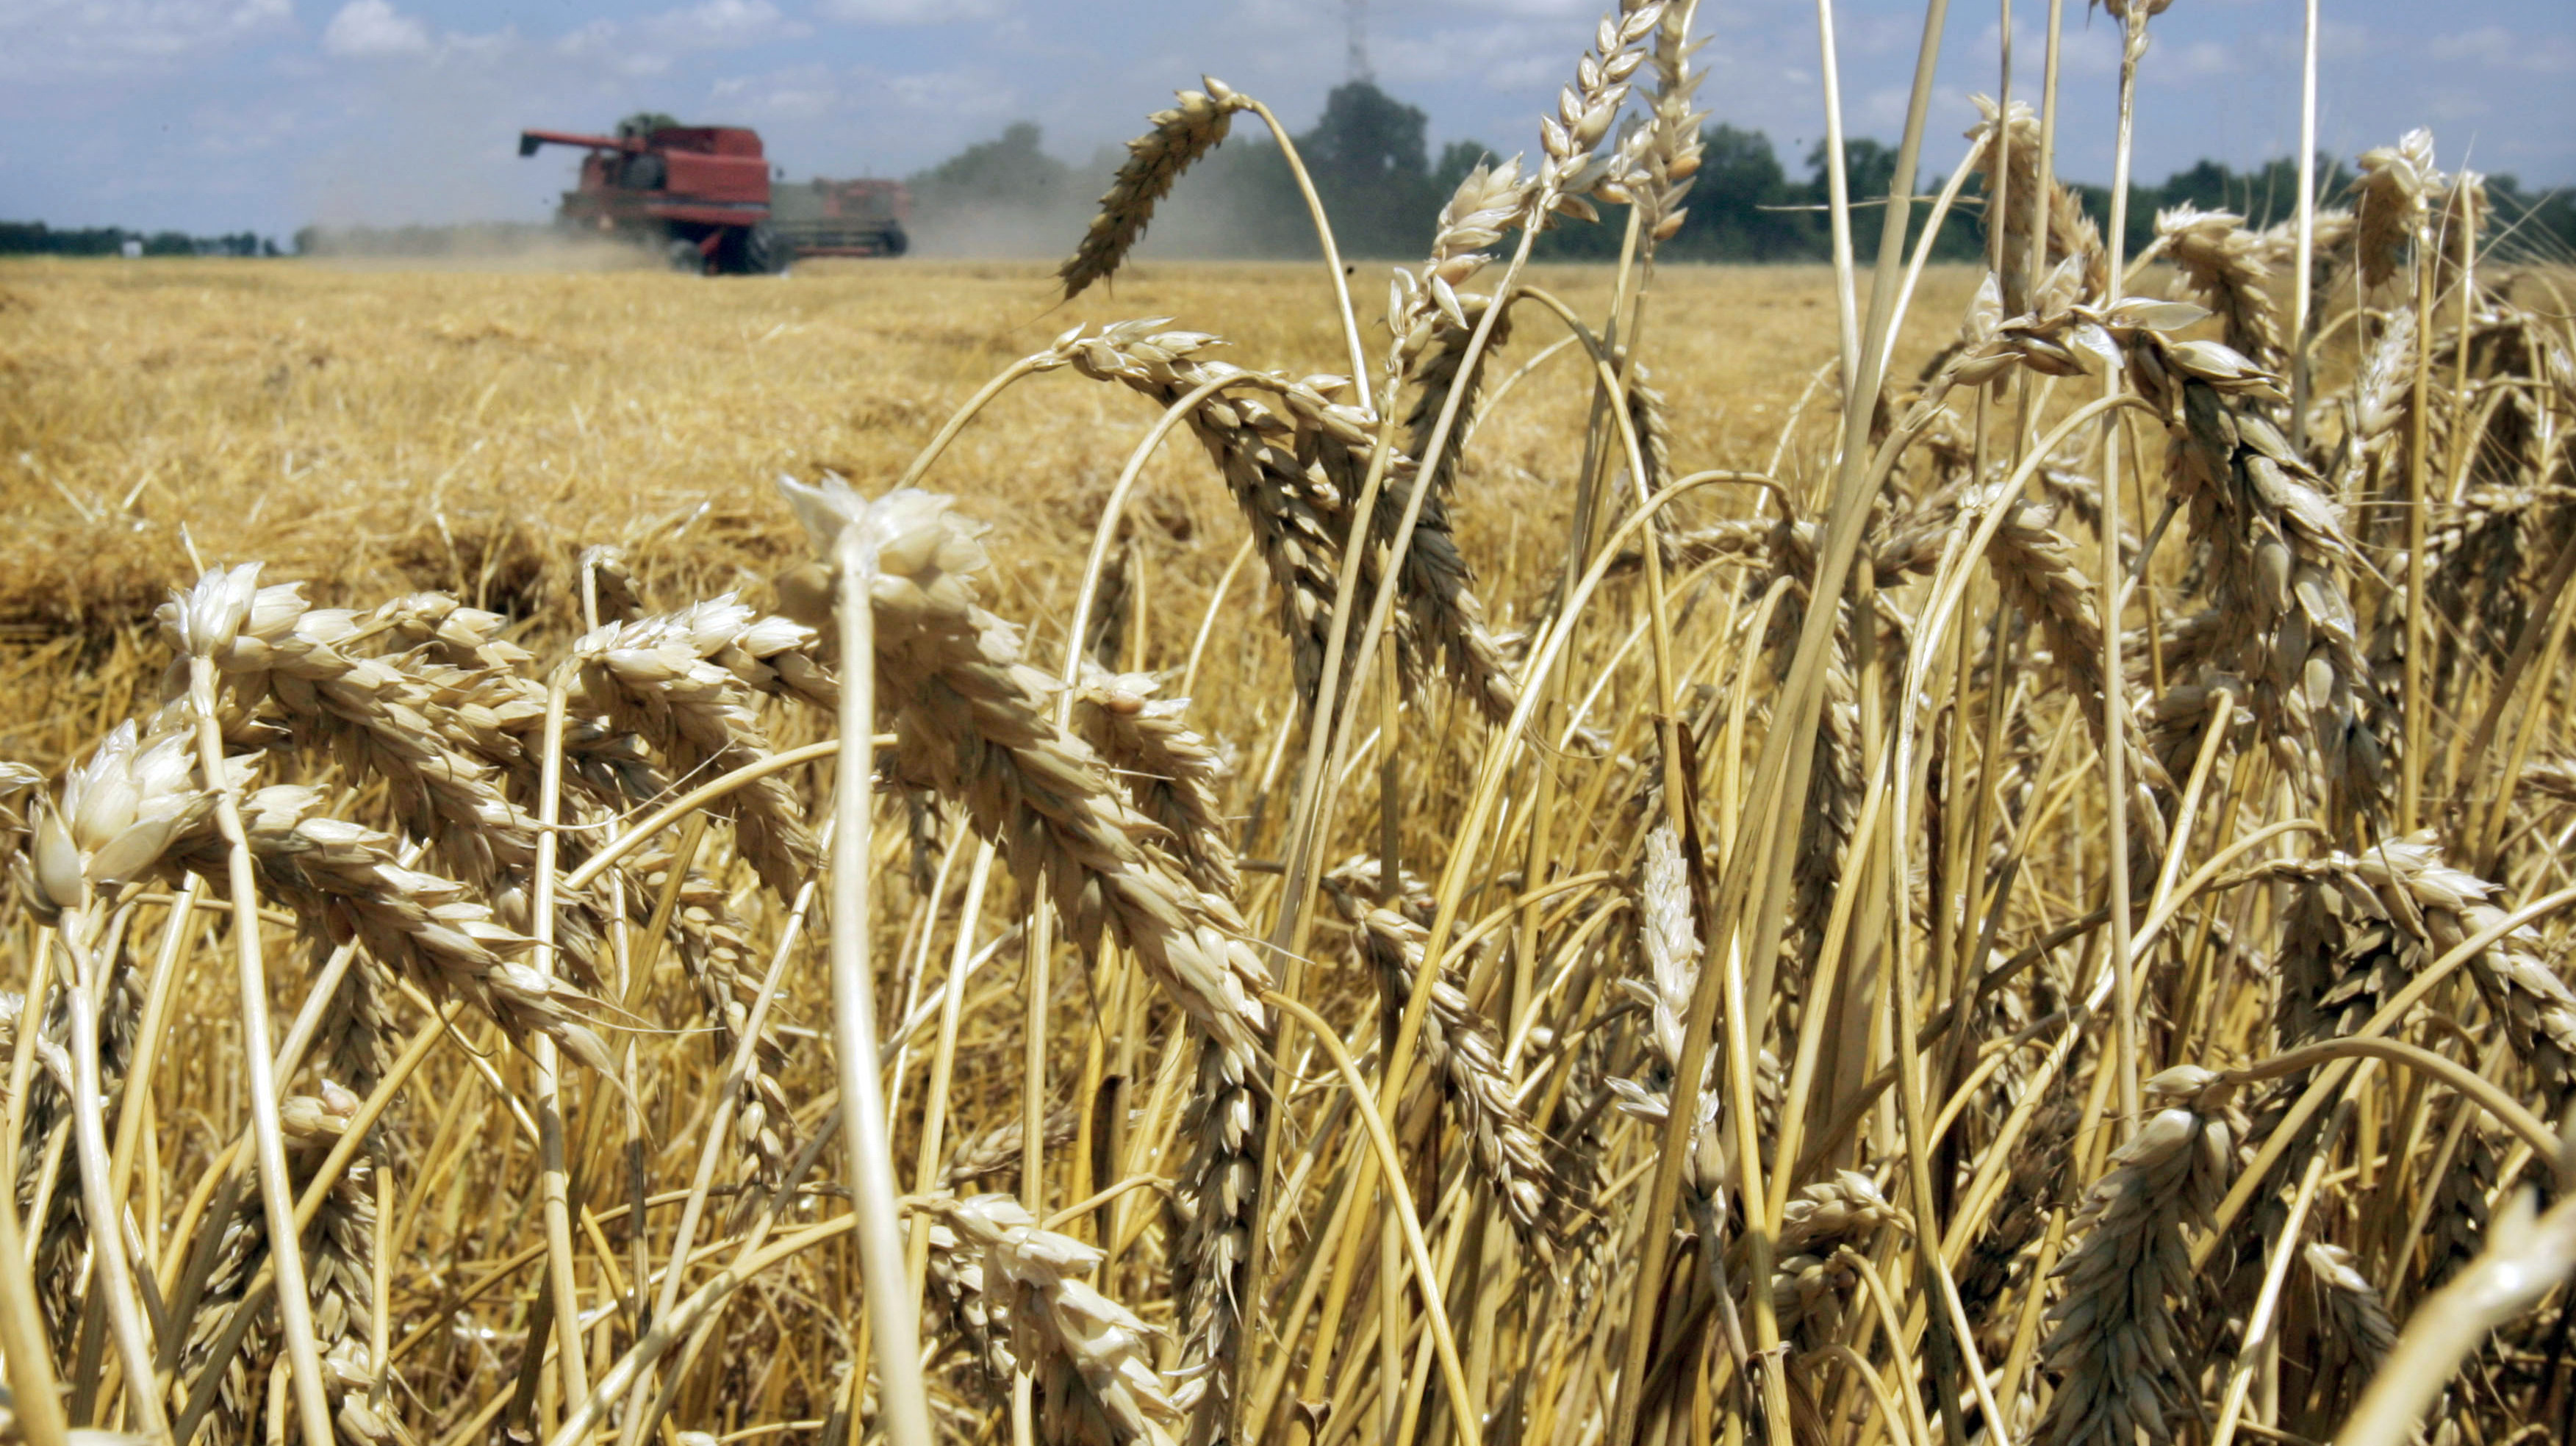 GMO Wheat Found In Oregon Field. How Did It Get There?